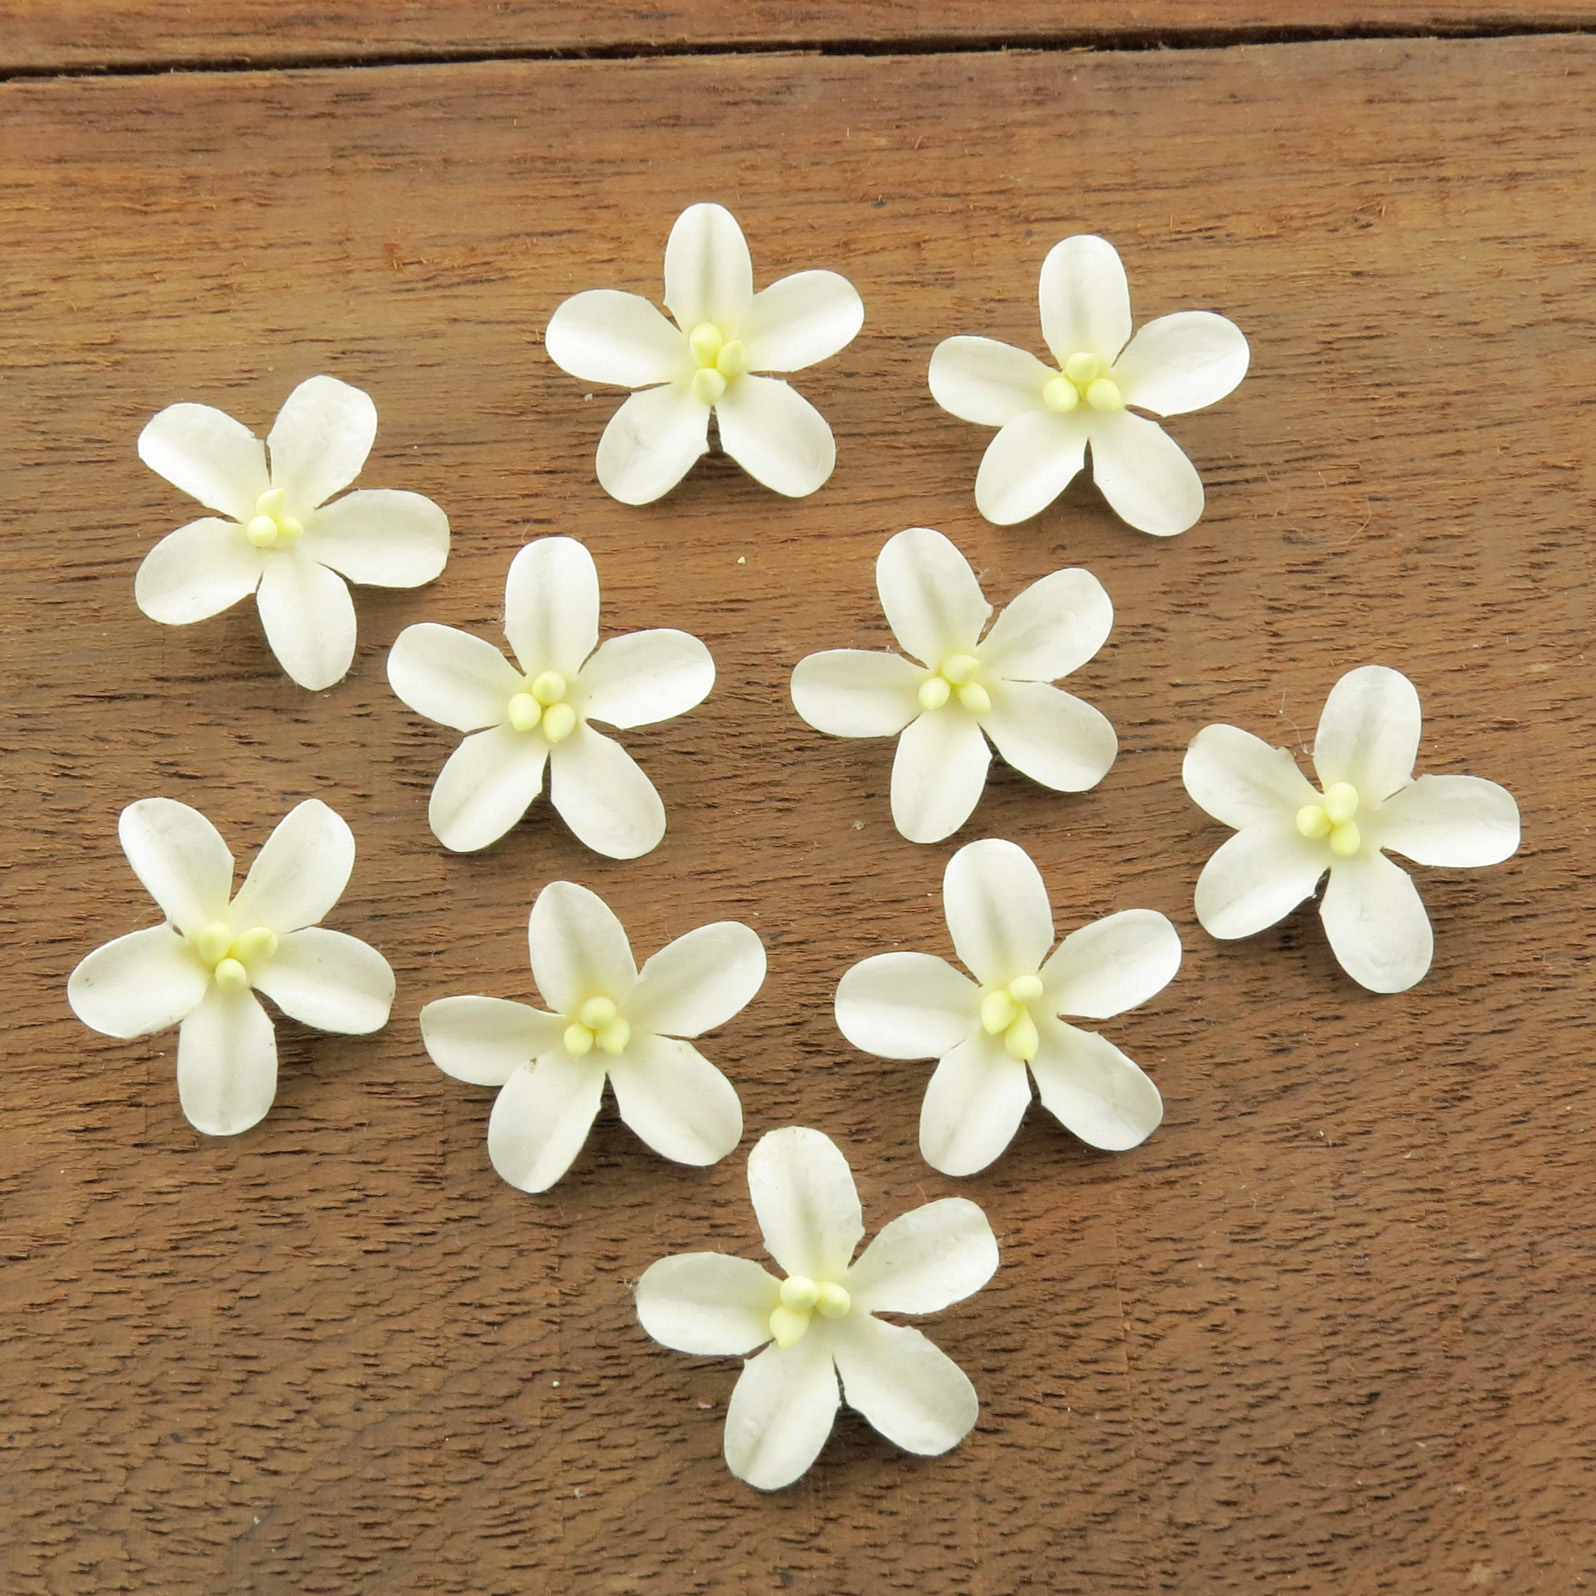 WHITE COTTON STEM MULBERRY PAPER FLOWERS - SET D